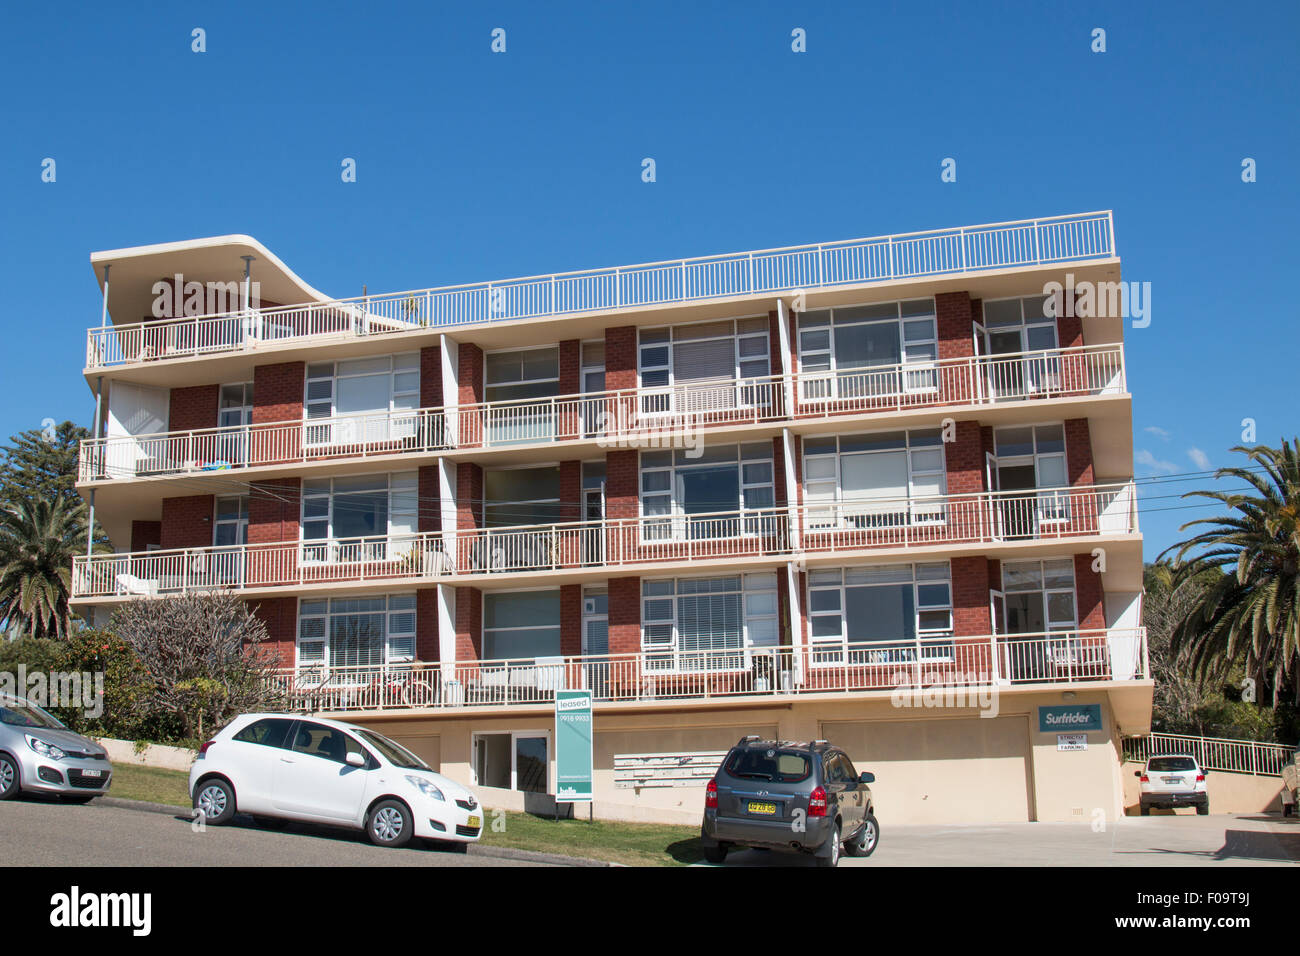 Surfrider Apartment Unit Building At Avalon Beach On Sydneys Northern Beachesnew South Walesaustralia